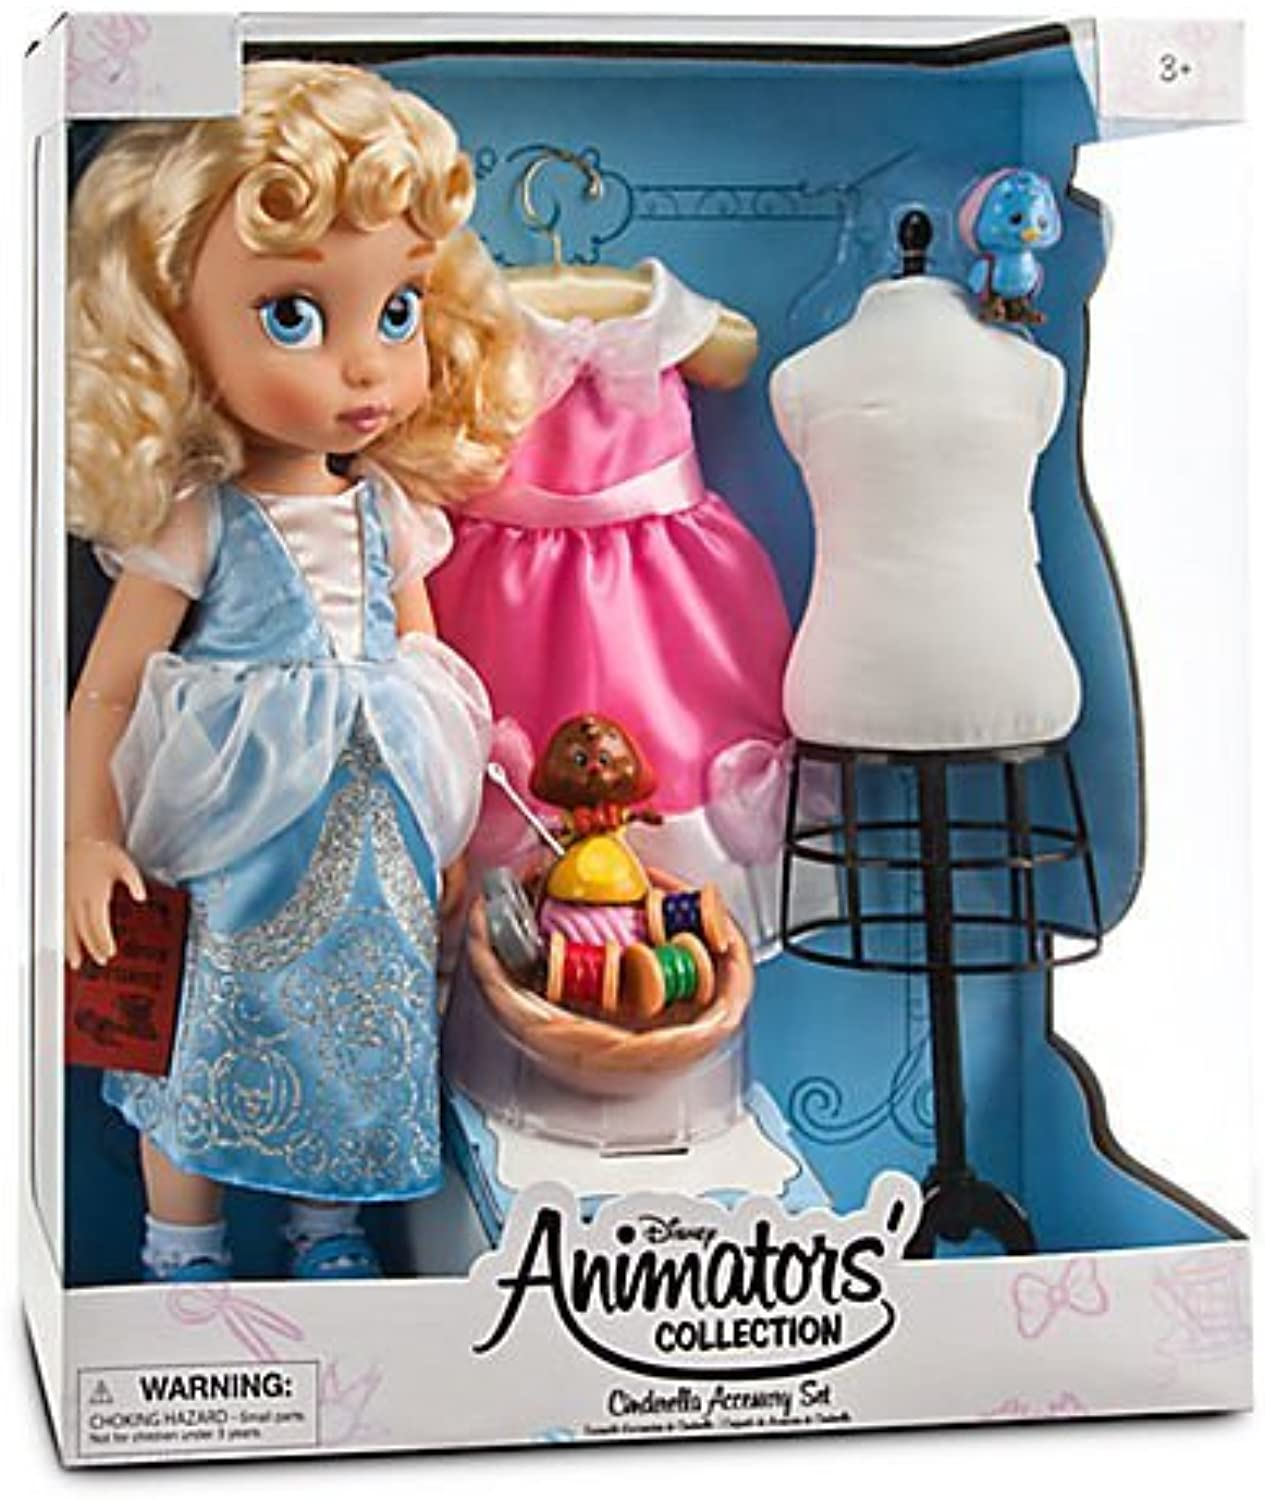 Limited Edition Deluxe Cinderella Doll Set - Disney Animators' Collection Includes 2 New Dresses, Dress Form, Sewing Basket, Blaubird, and Suzy the Mouse. by Disney